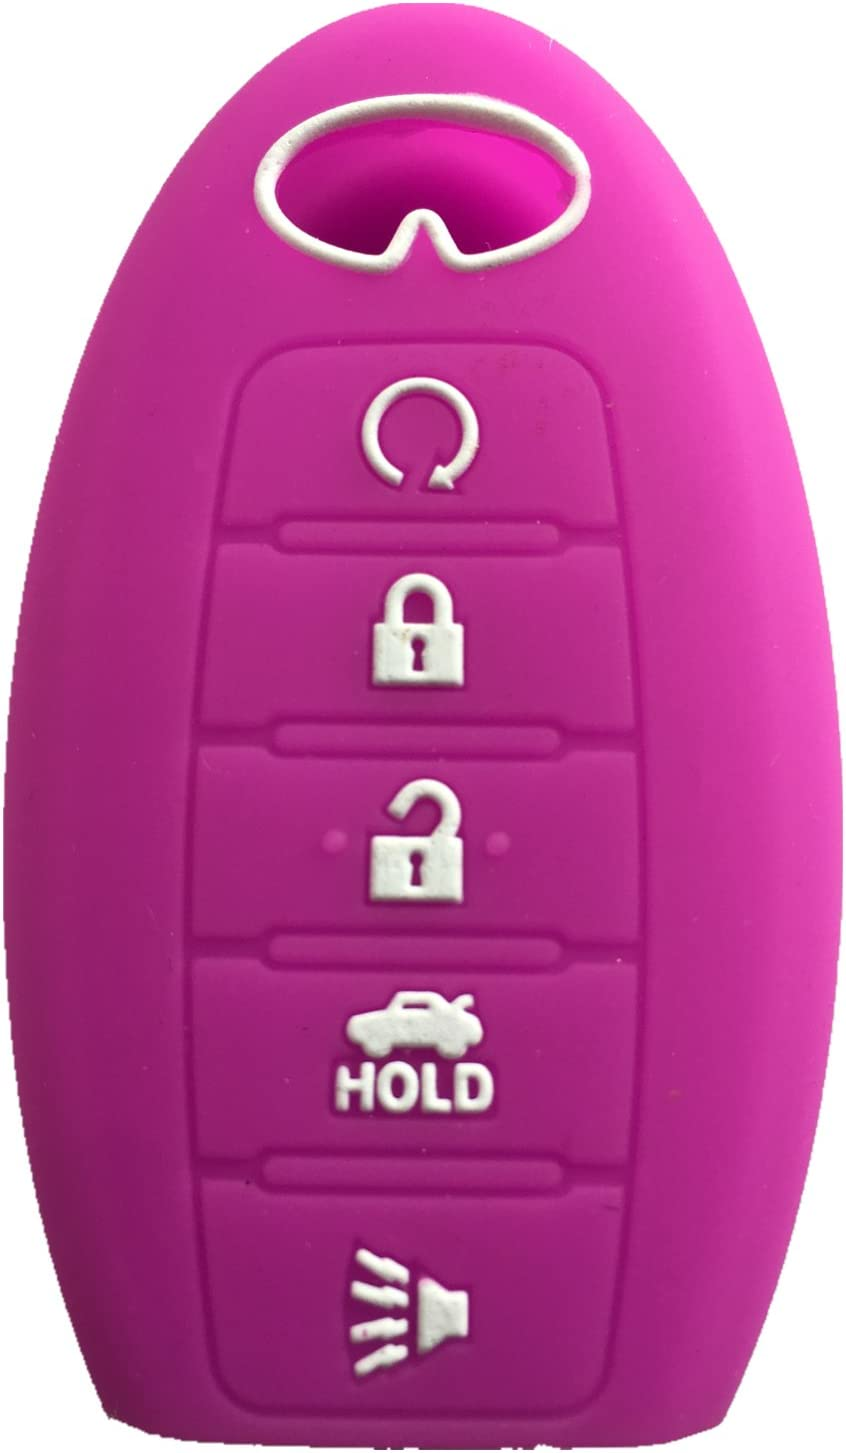 Rpkey Silicone Spring new work Keyless Entry Remote Control Fob Key p Case Cover Trust